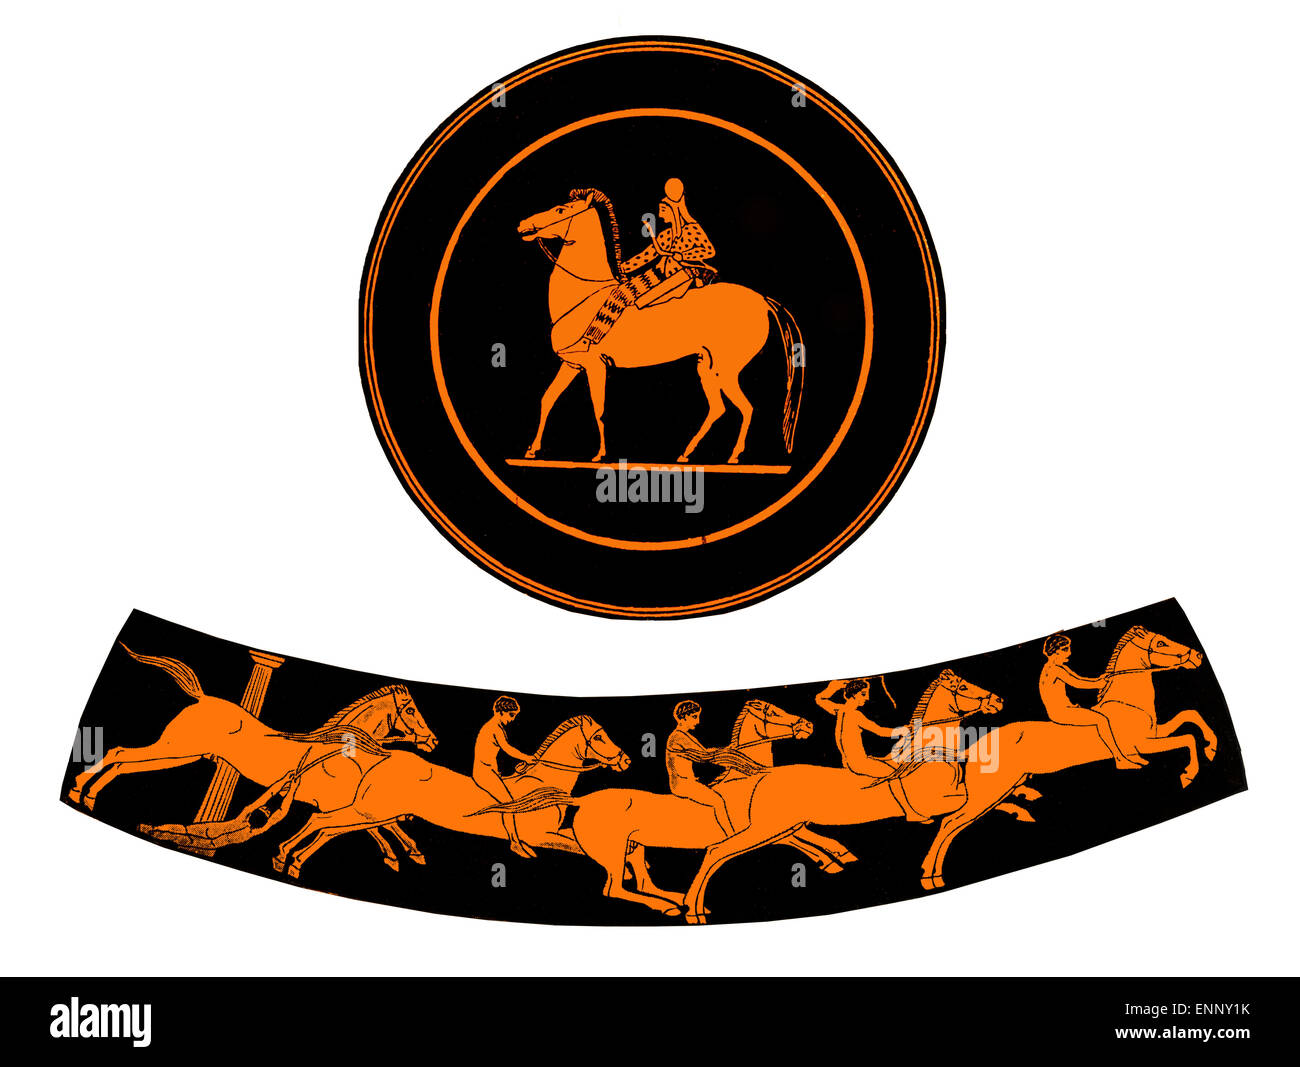 terracotta plate with rider and ancient Greek vase with boys riding horses, isolated on white - Stock Image